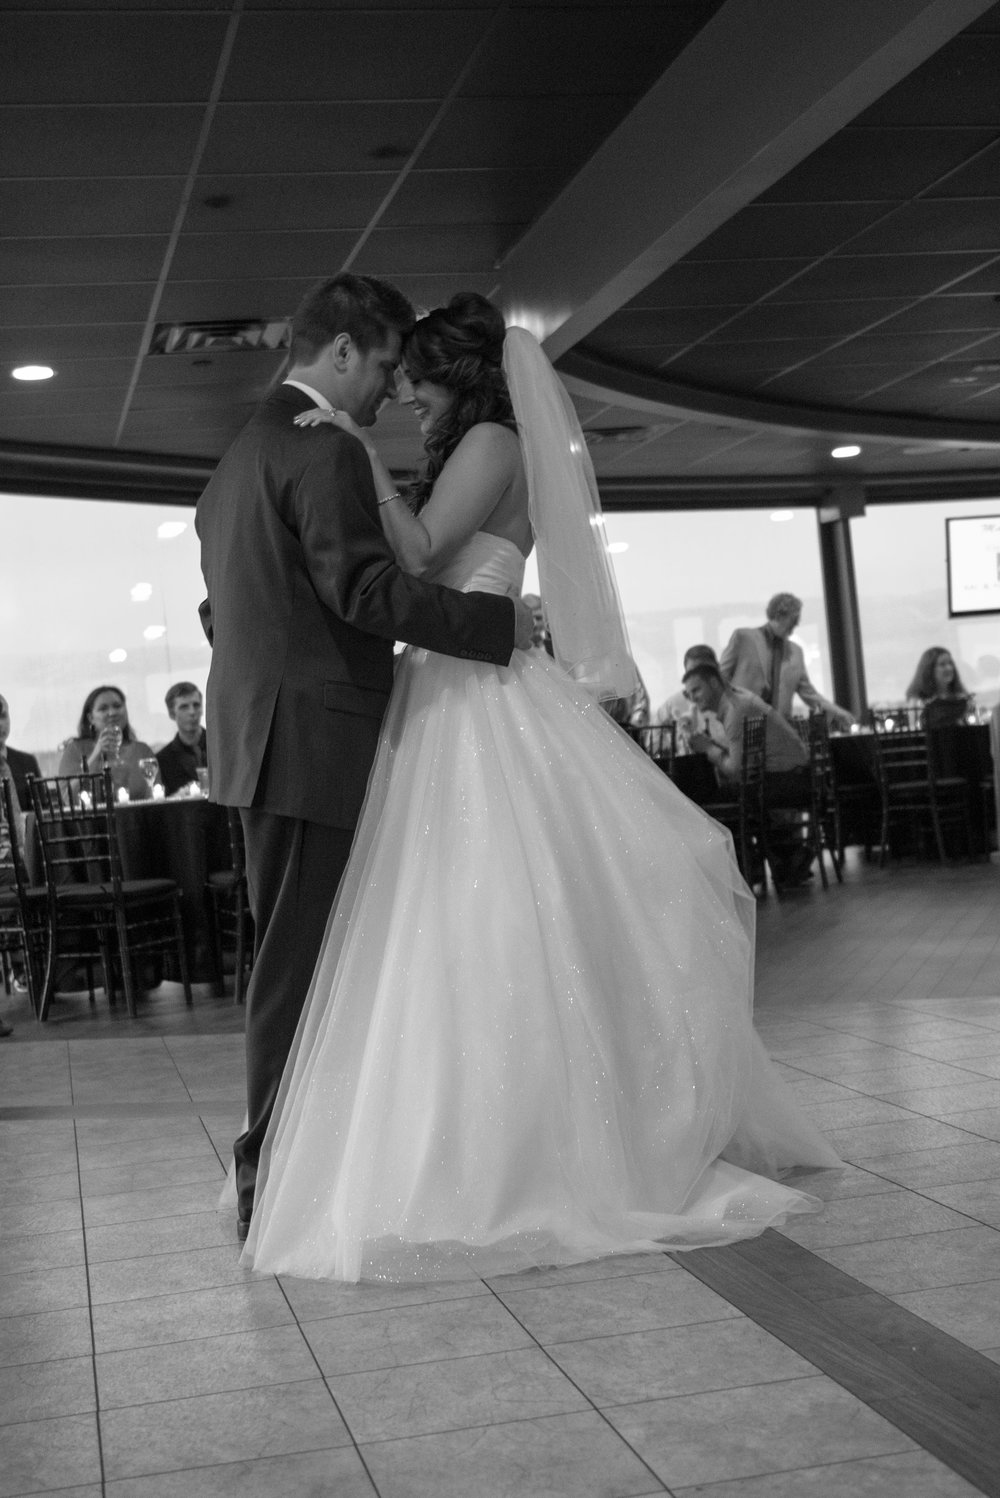 After the intro they moved right into their first dance. Love the love between them!